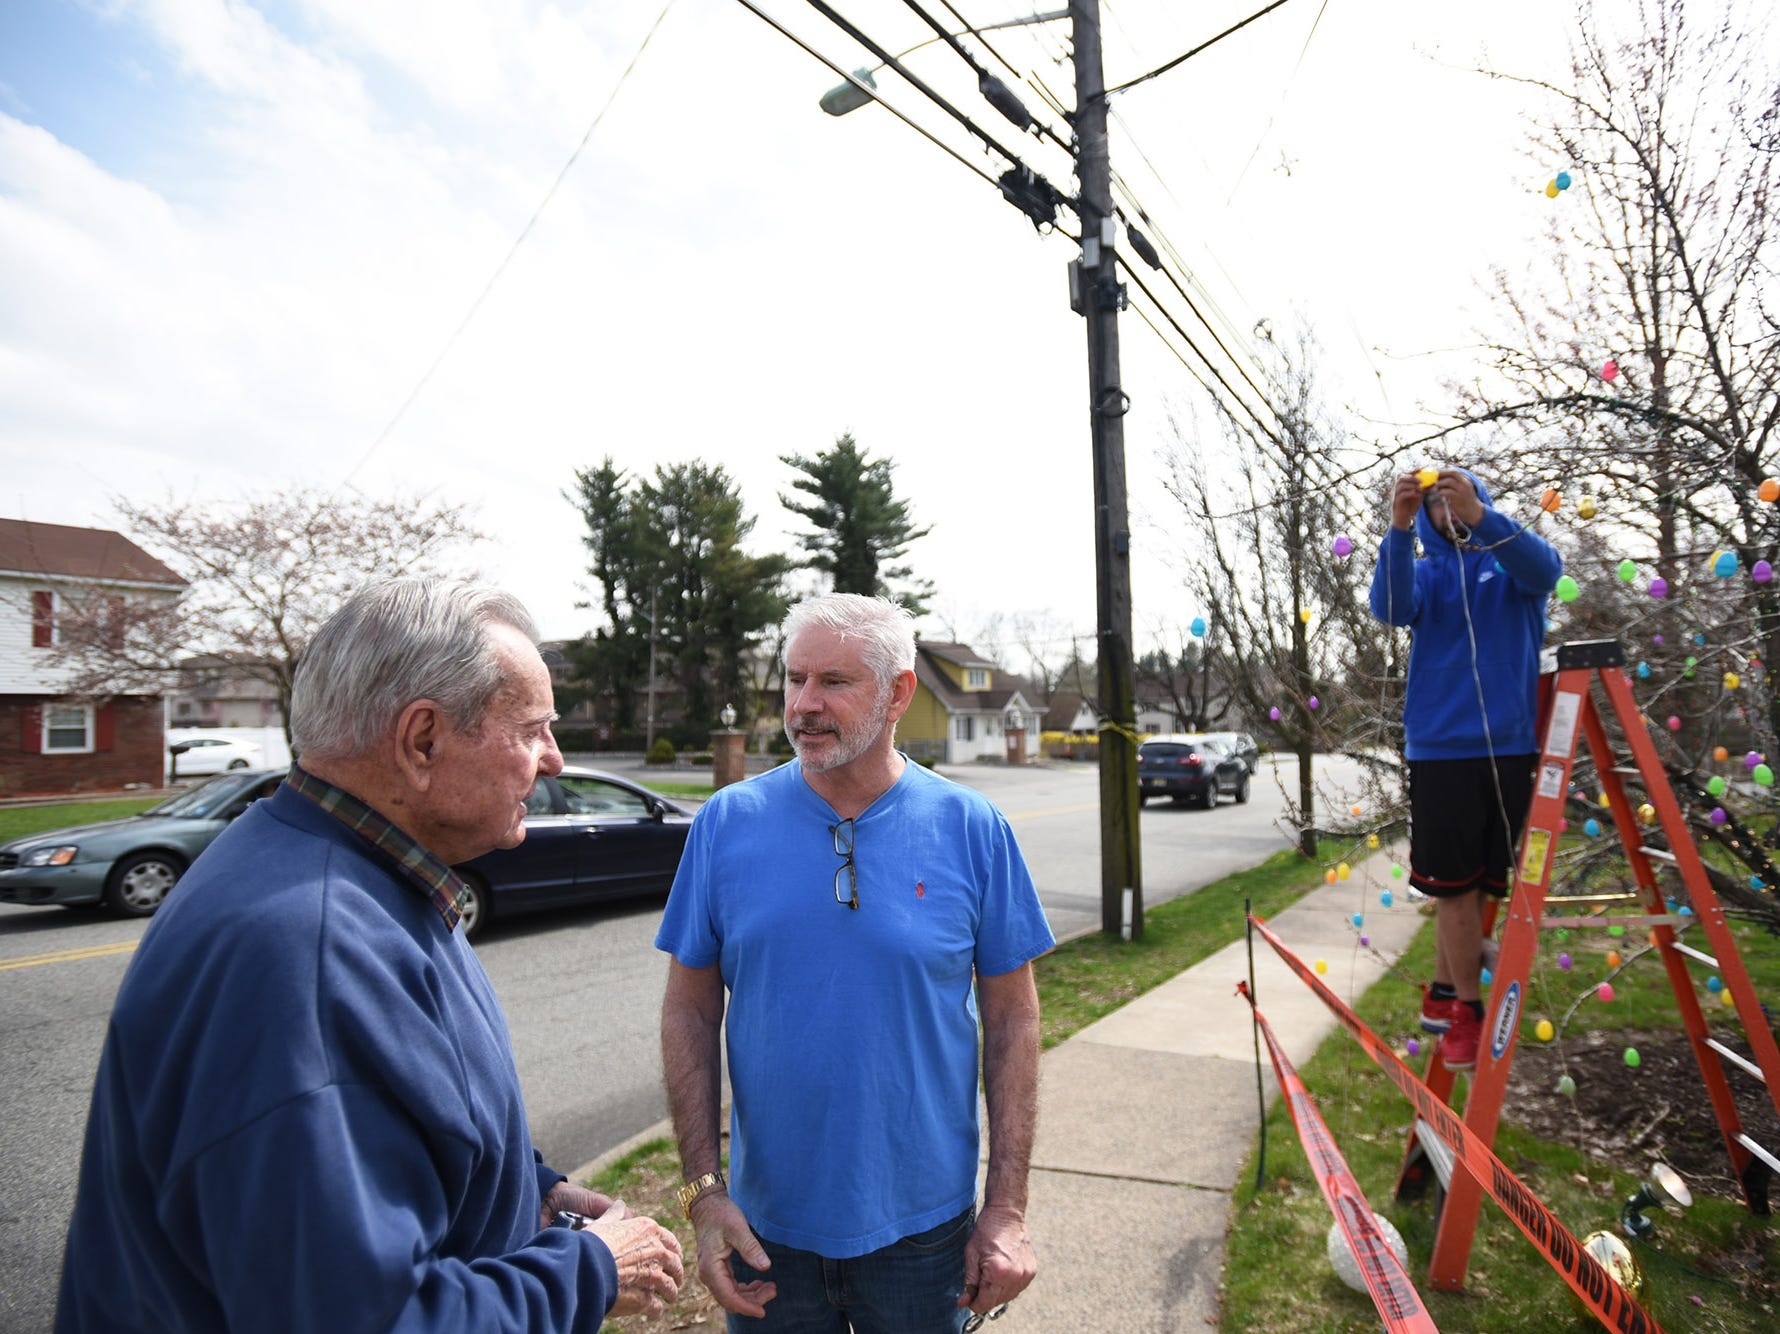 A man stops by to speak with Wayne Gangi as neighbor Alex Cruz lends a helping hand to set up an Easter display on Grove Street in Clifton on Friday April 12, 2019. The original display was dismantled by a neighbor.